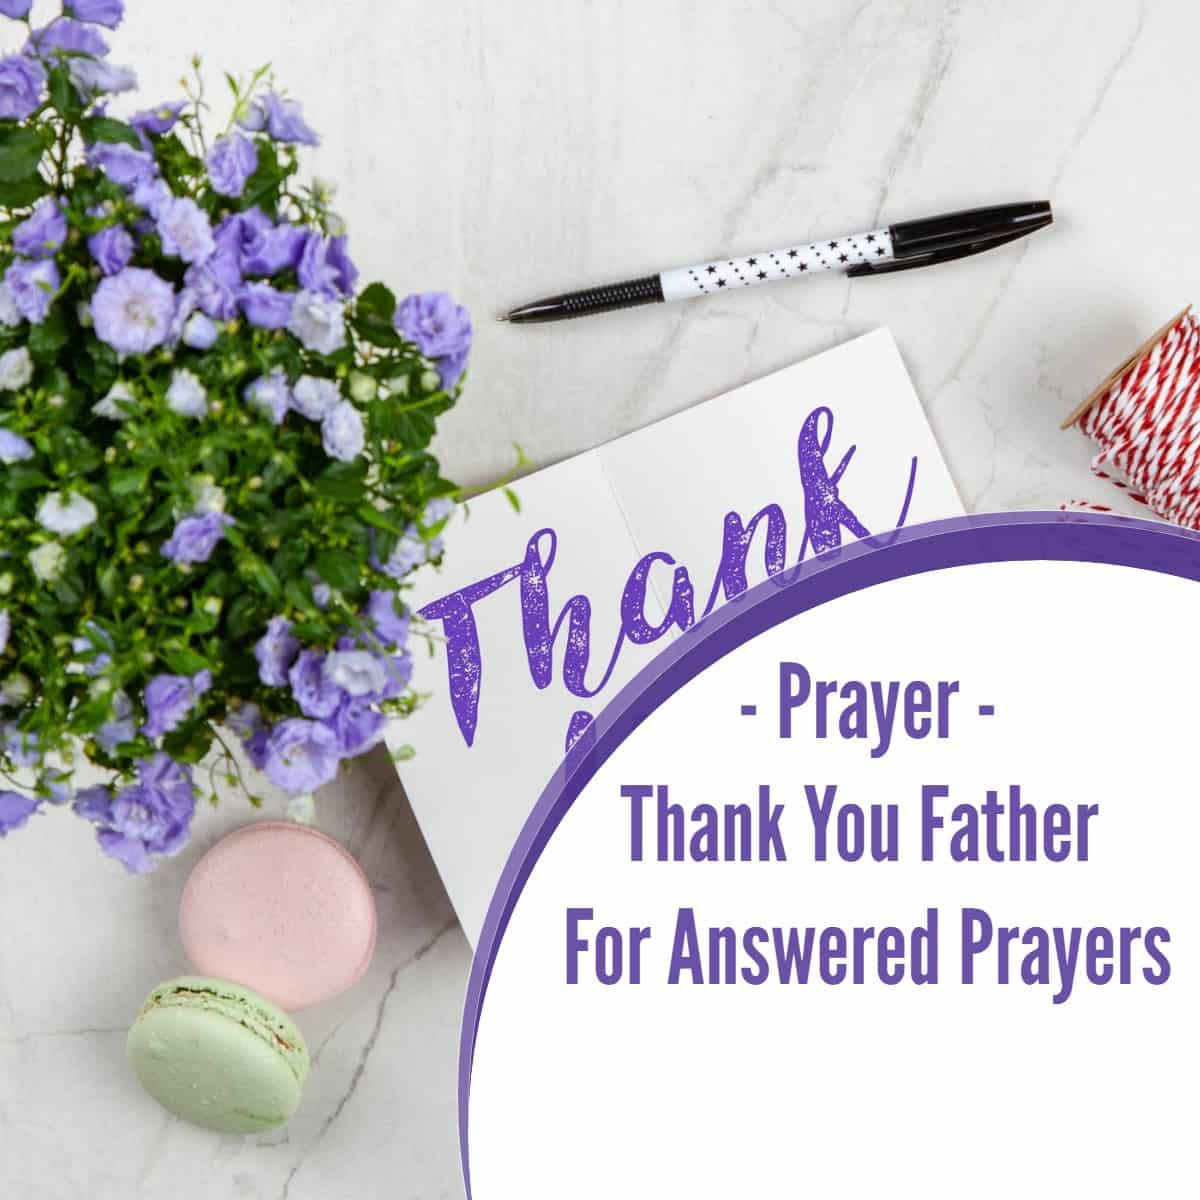 Prayer – Thank You Father For Answered Prayers